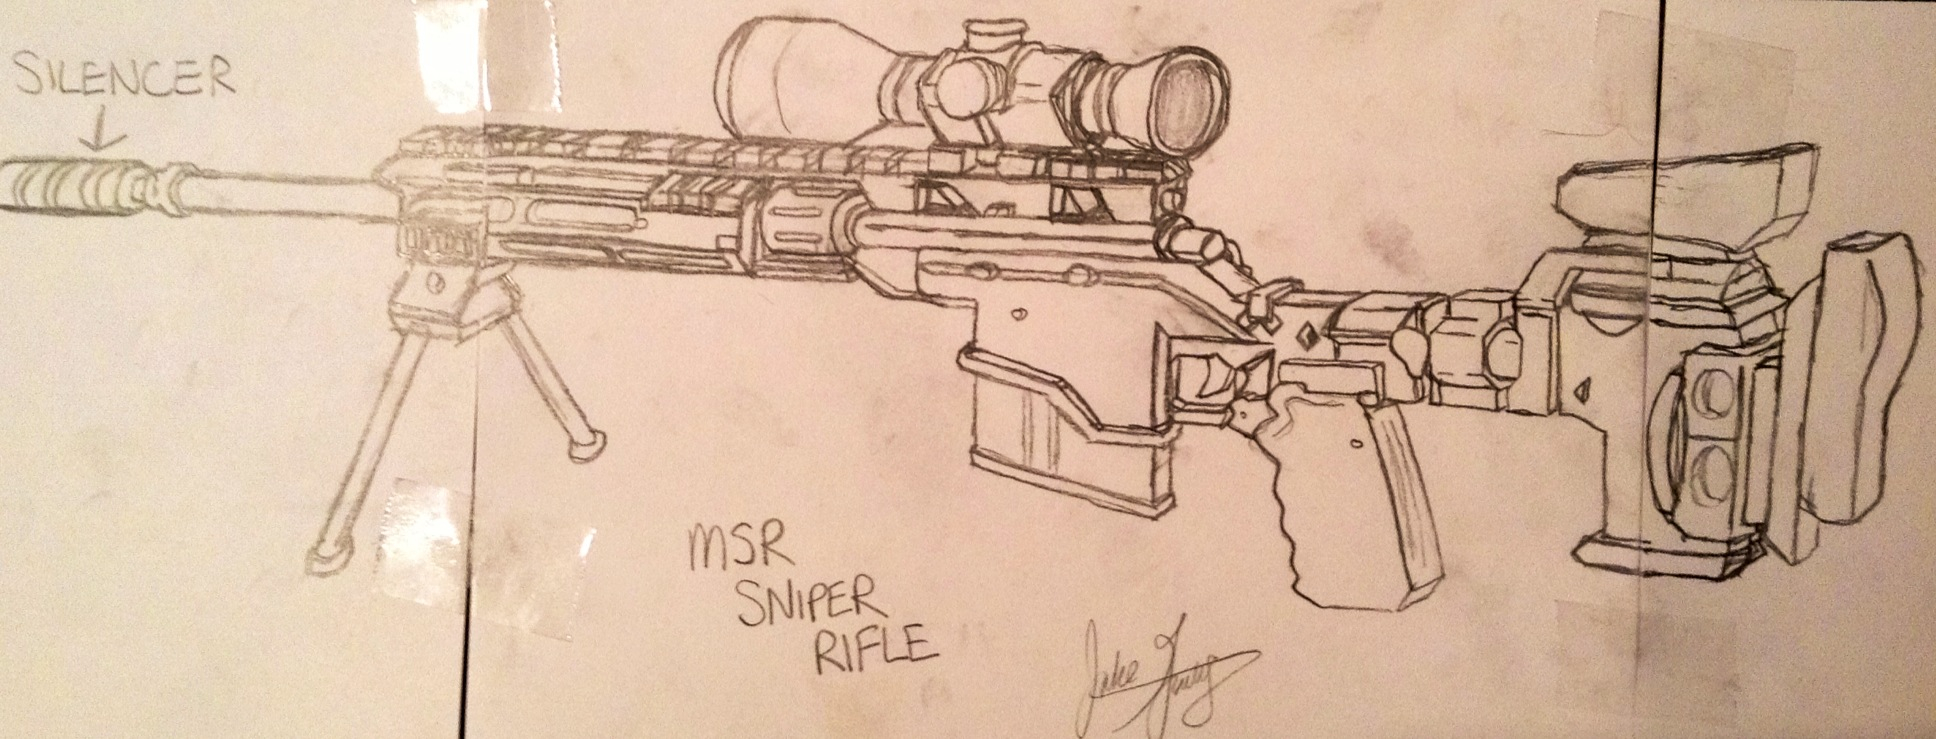 Drawn snipers sketch Call rifle art call MSR